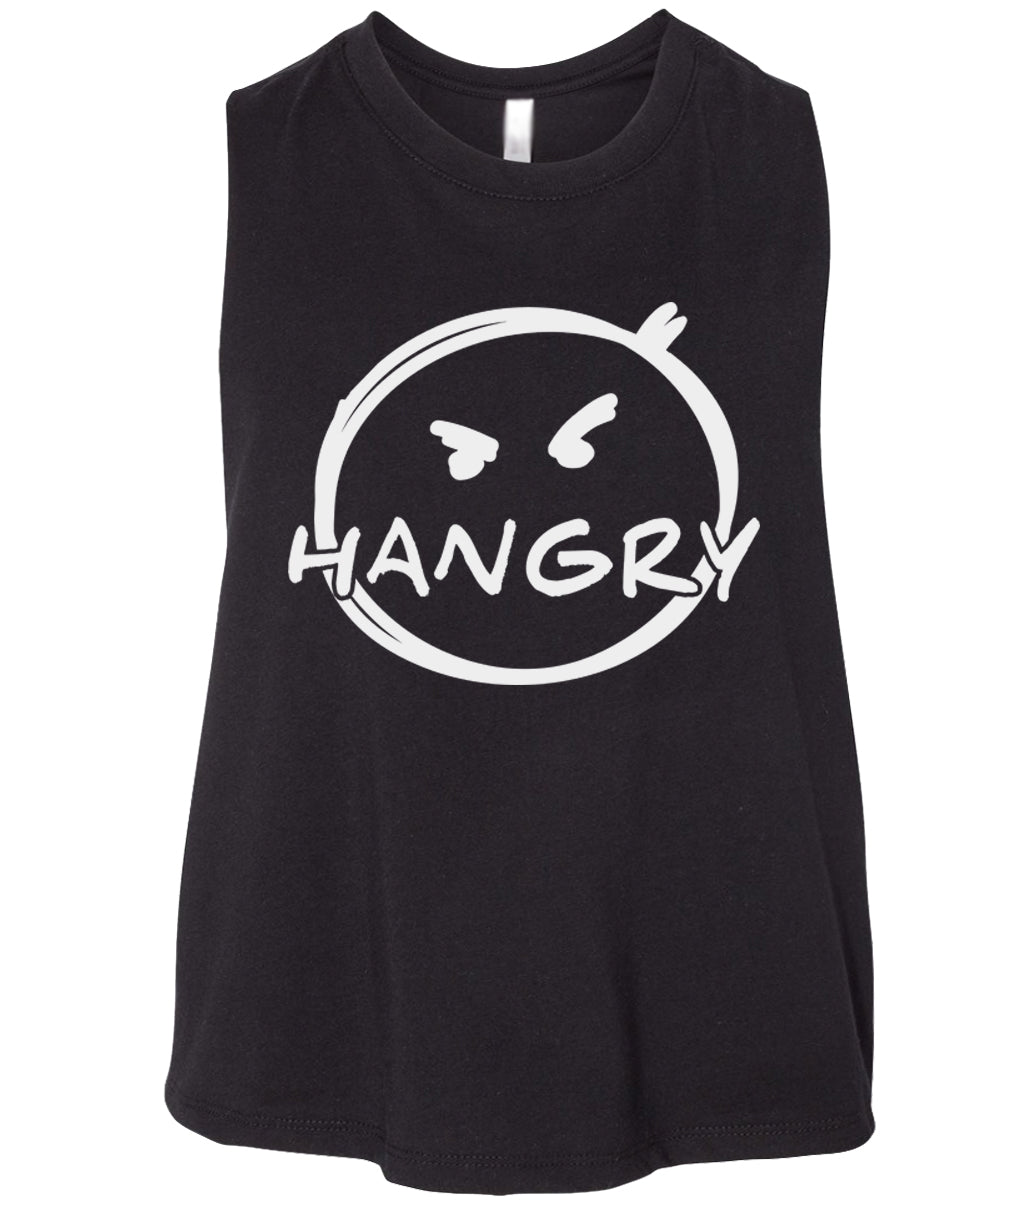 black hangry cropped tank top